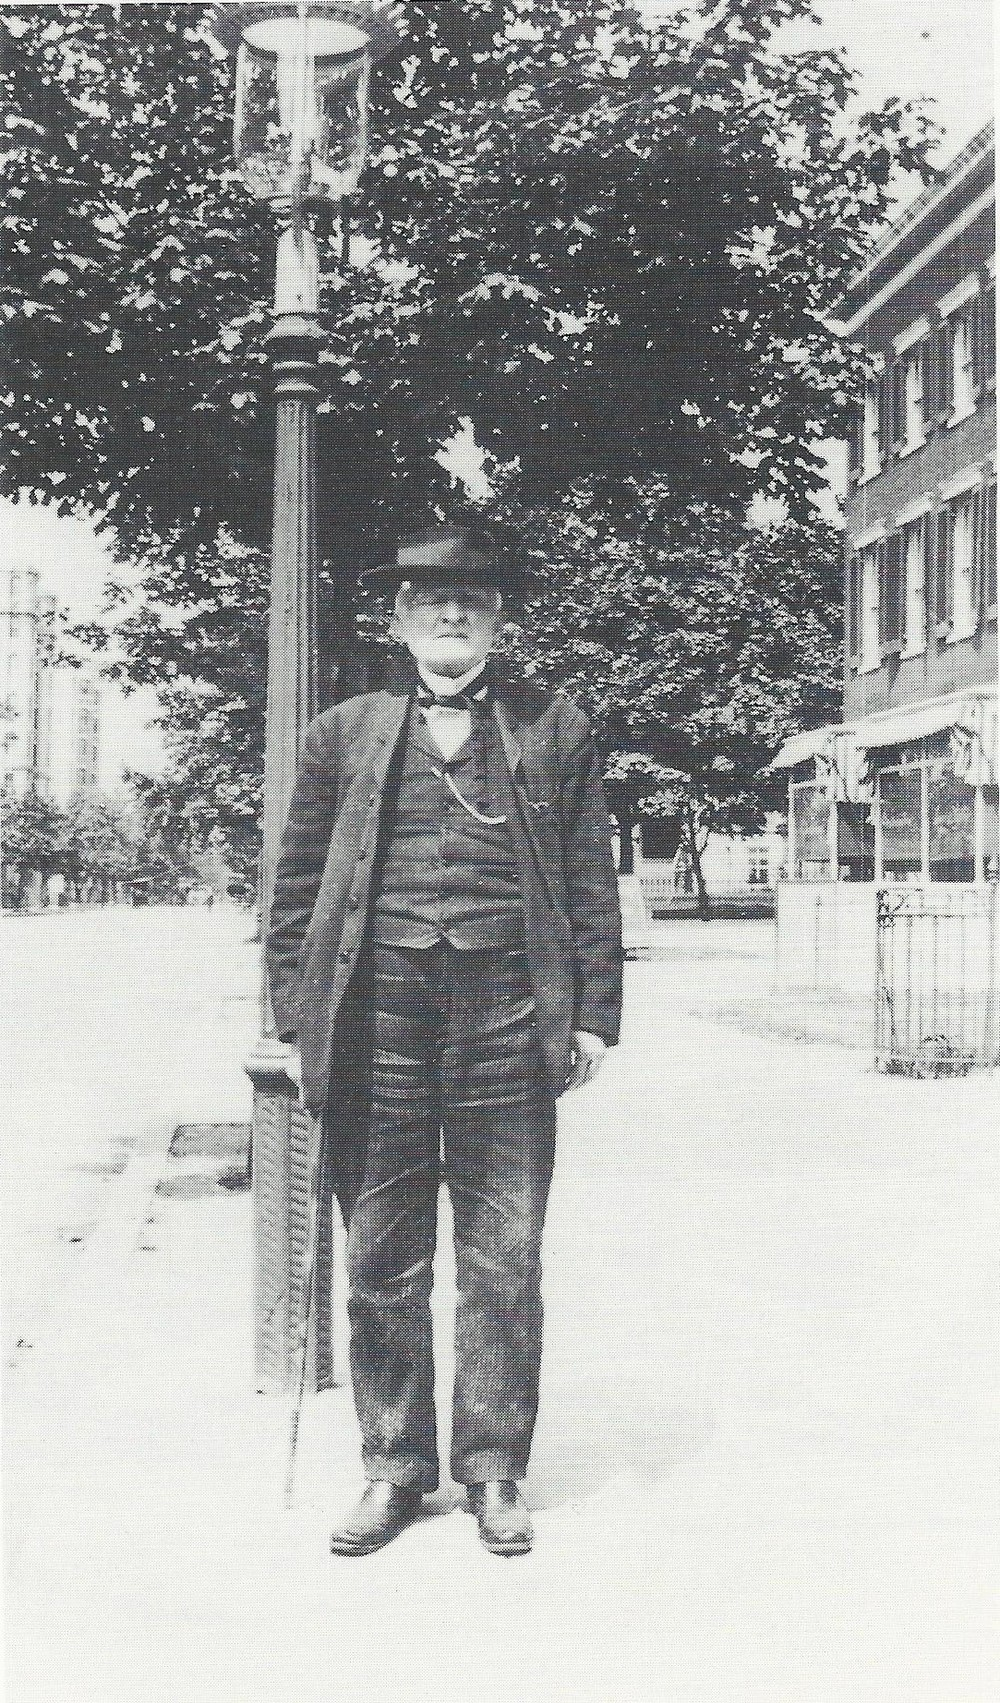 Mosby, 1910 in Washington, D.C.